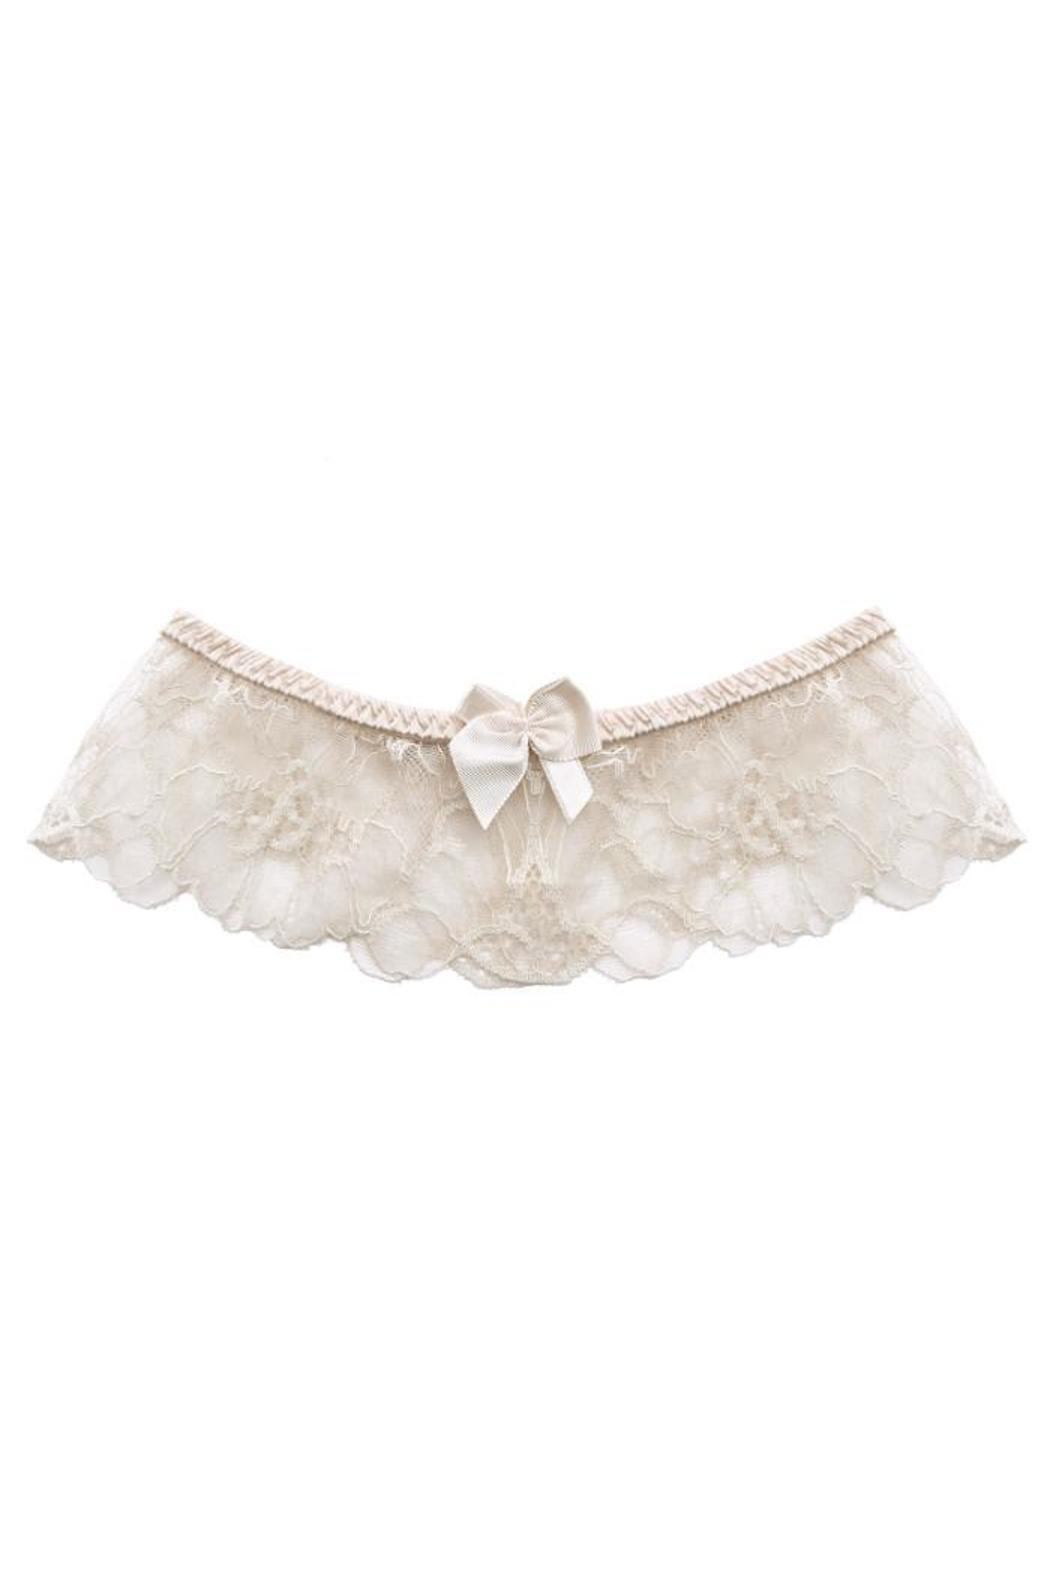 Stella McCartney Lingerie Erin Wishing Garter - Main Image